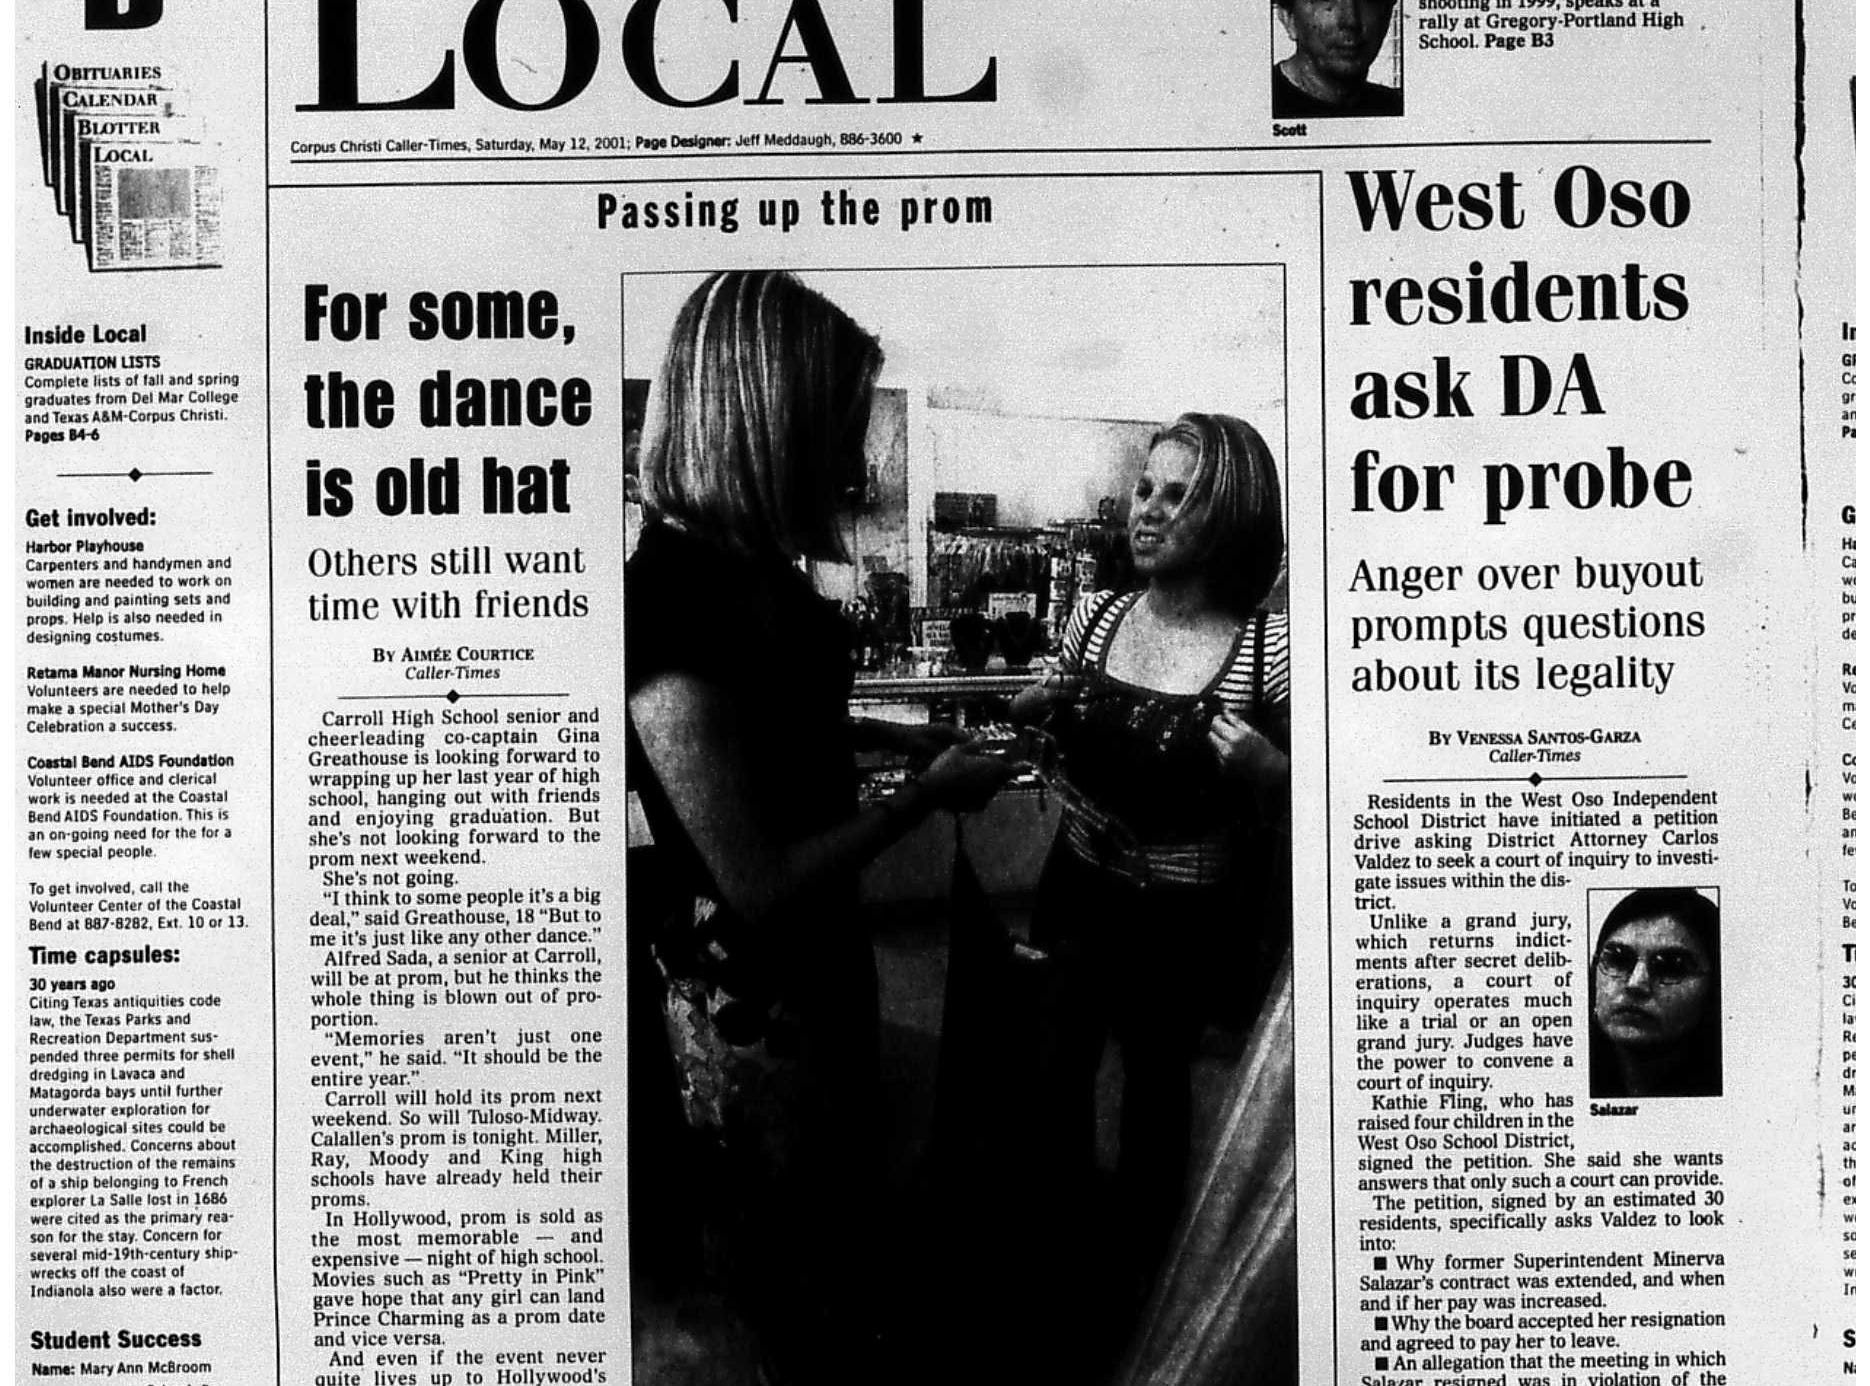 The local section front page of the May 12, 2001 Caller-Times featuring an alternative prom primarily for LGBT youth.